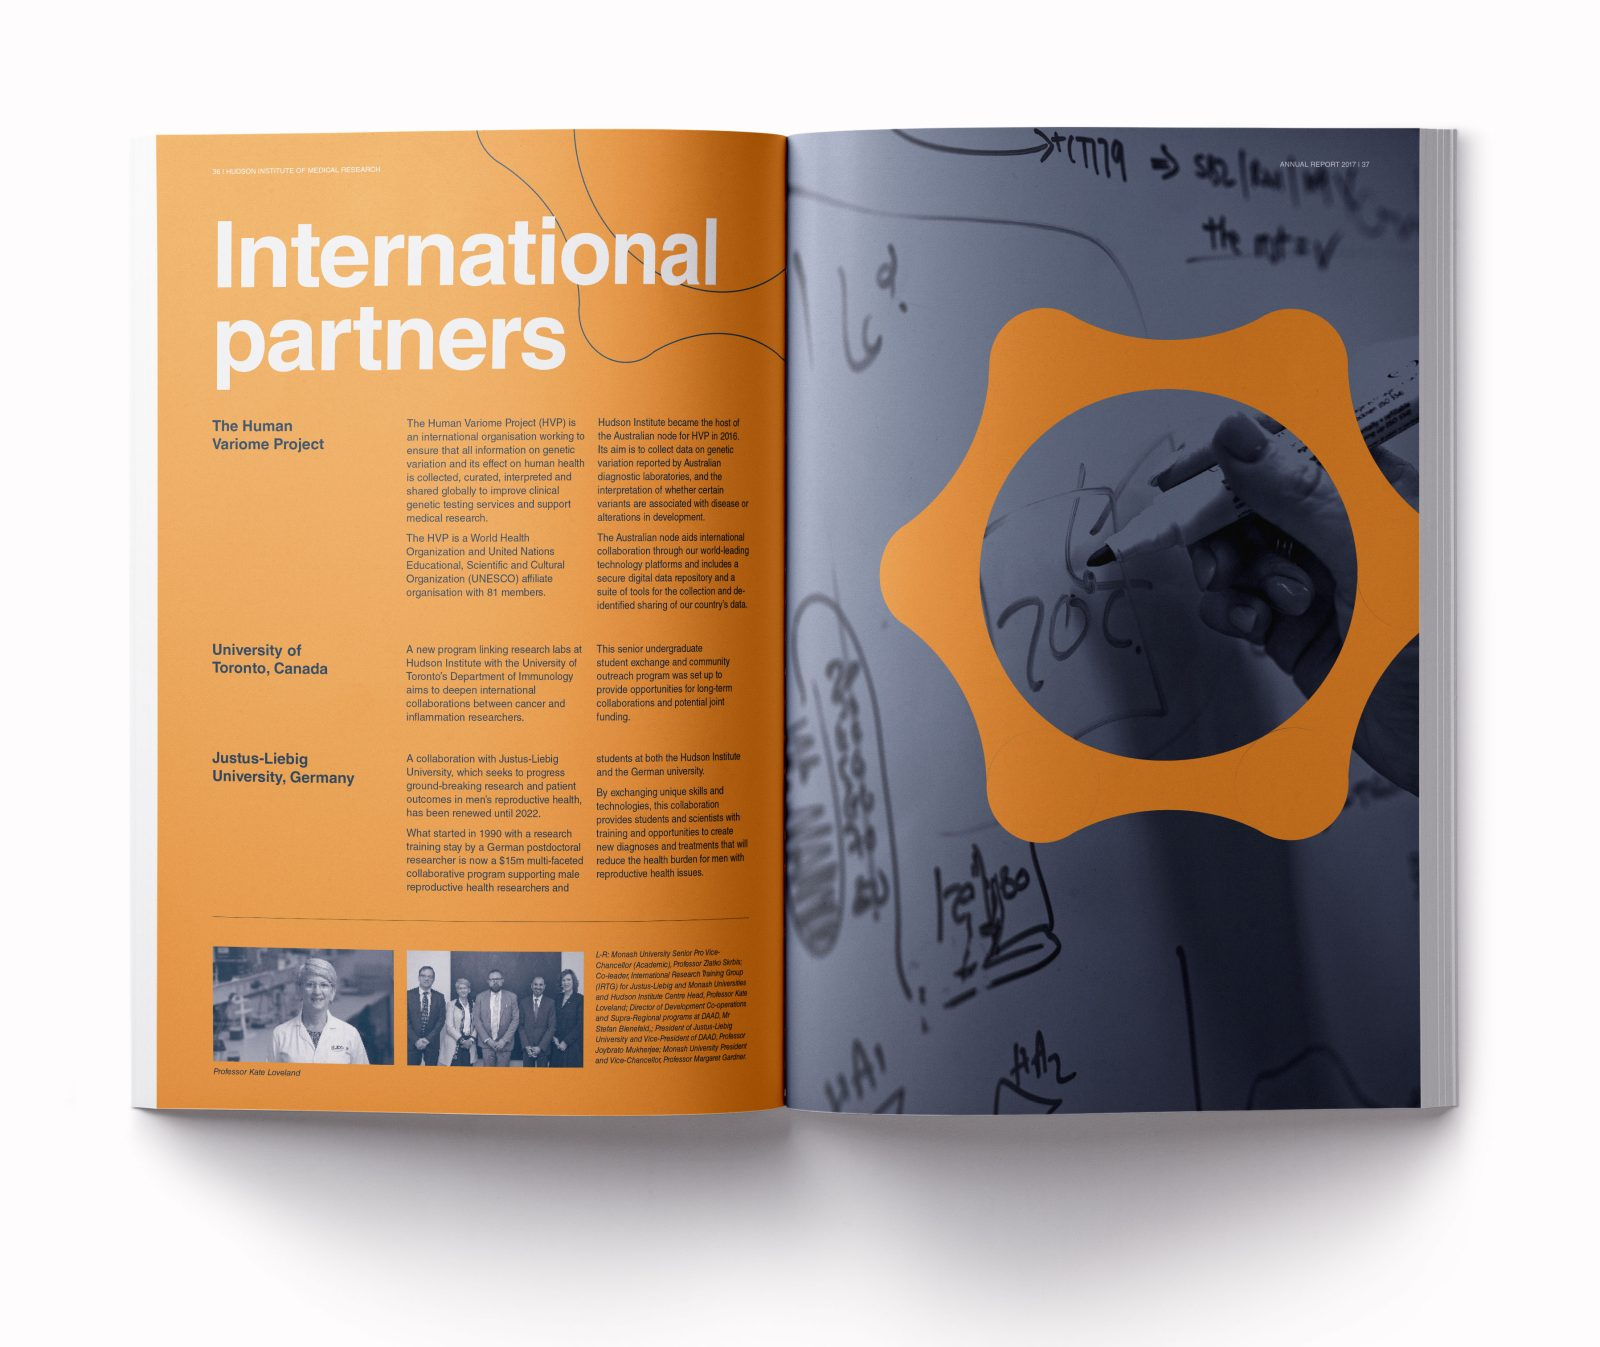 Hudson Institure annual report international partners spread